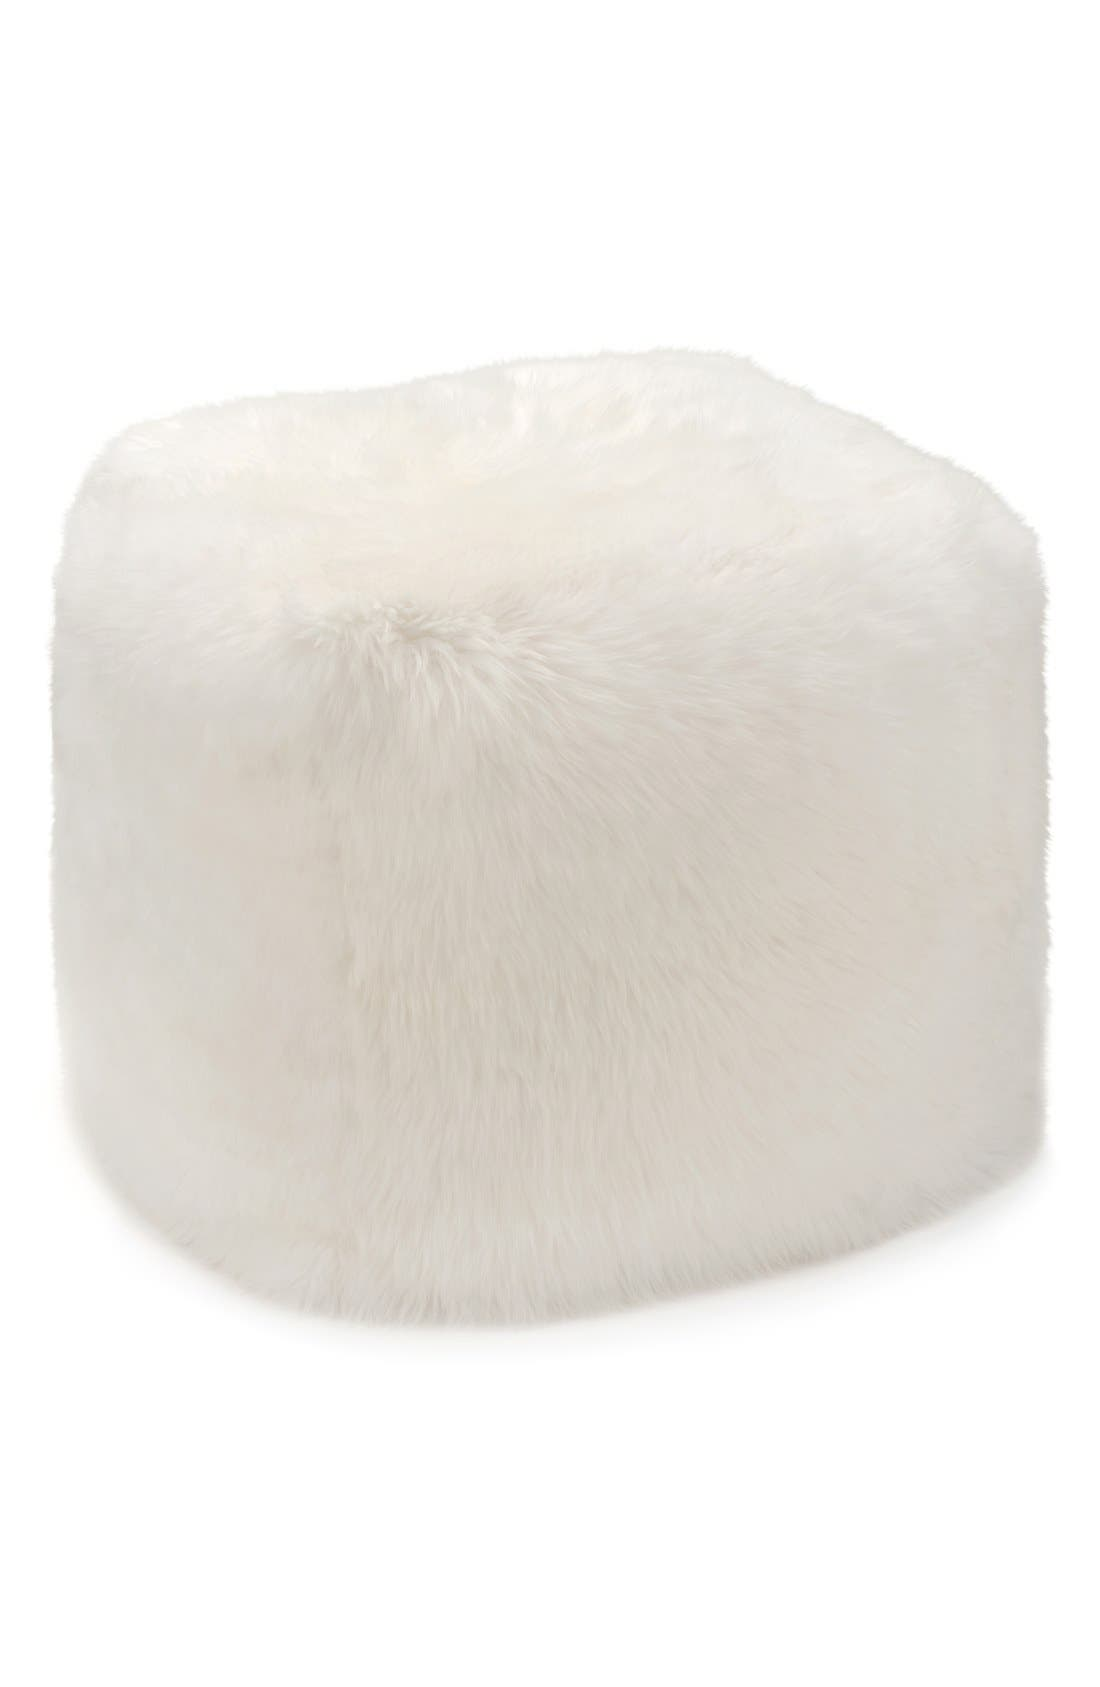 Main Image - UGG® Genuine Shearling Pouf